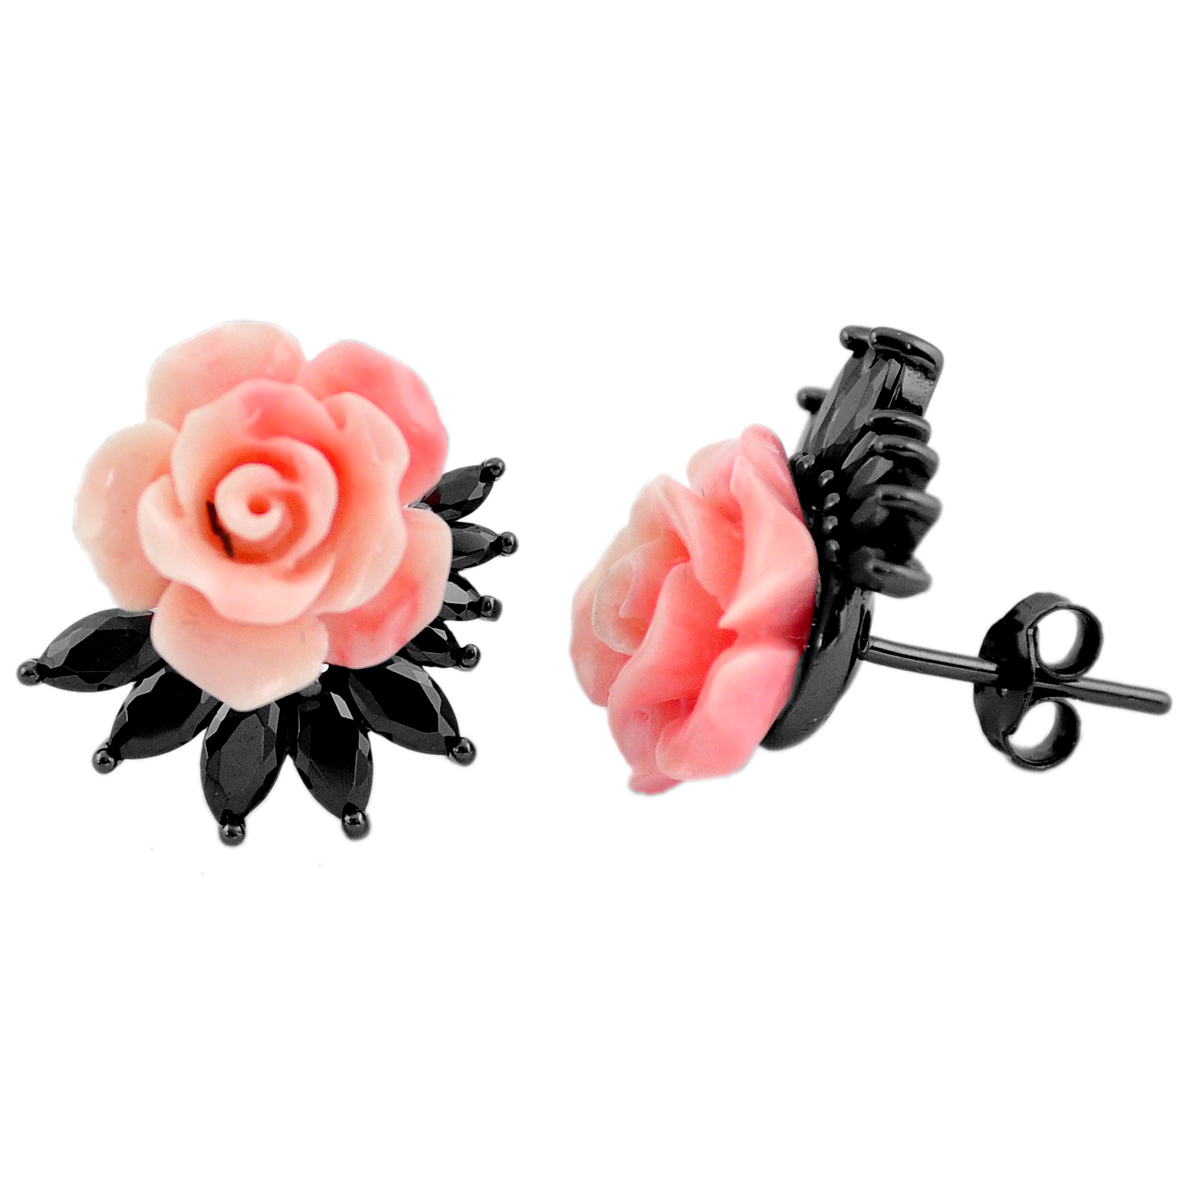 A pair of 925 silver earrings set with carved coral and hematite, L. 1.6cm.